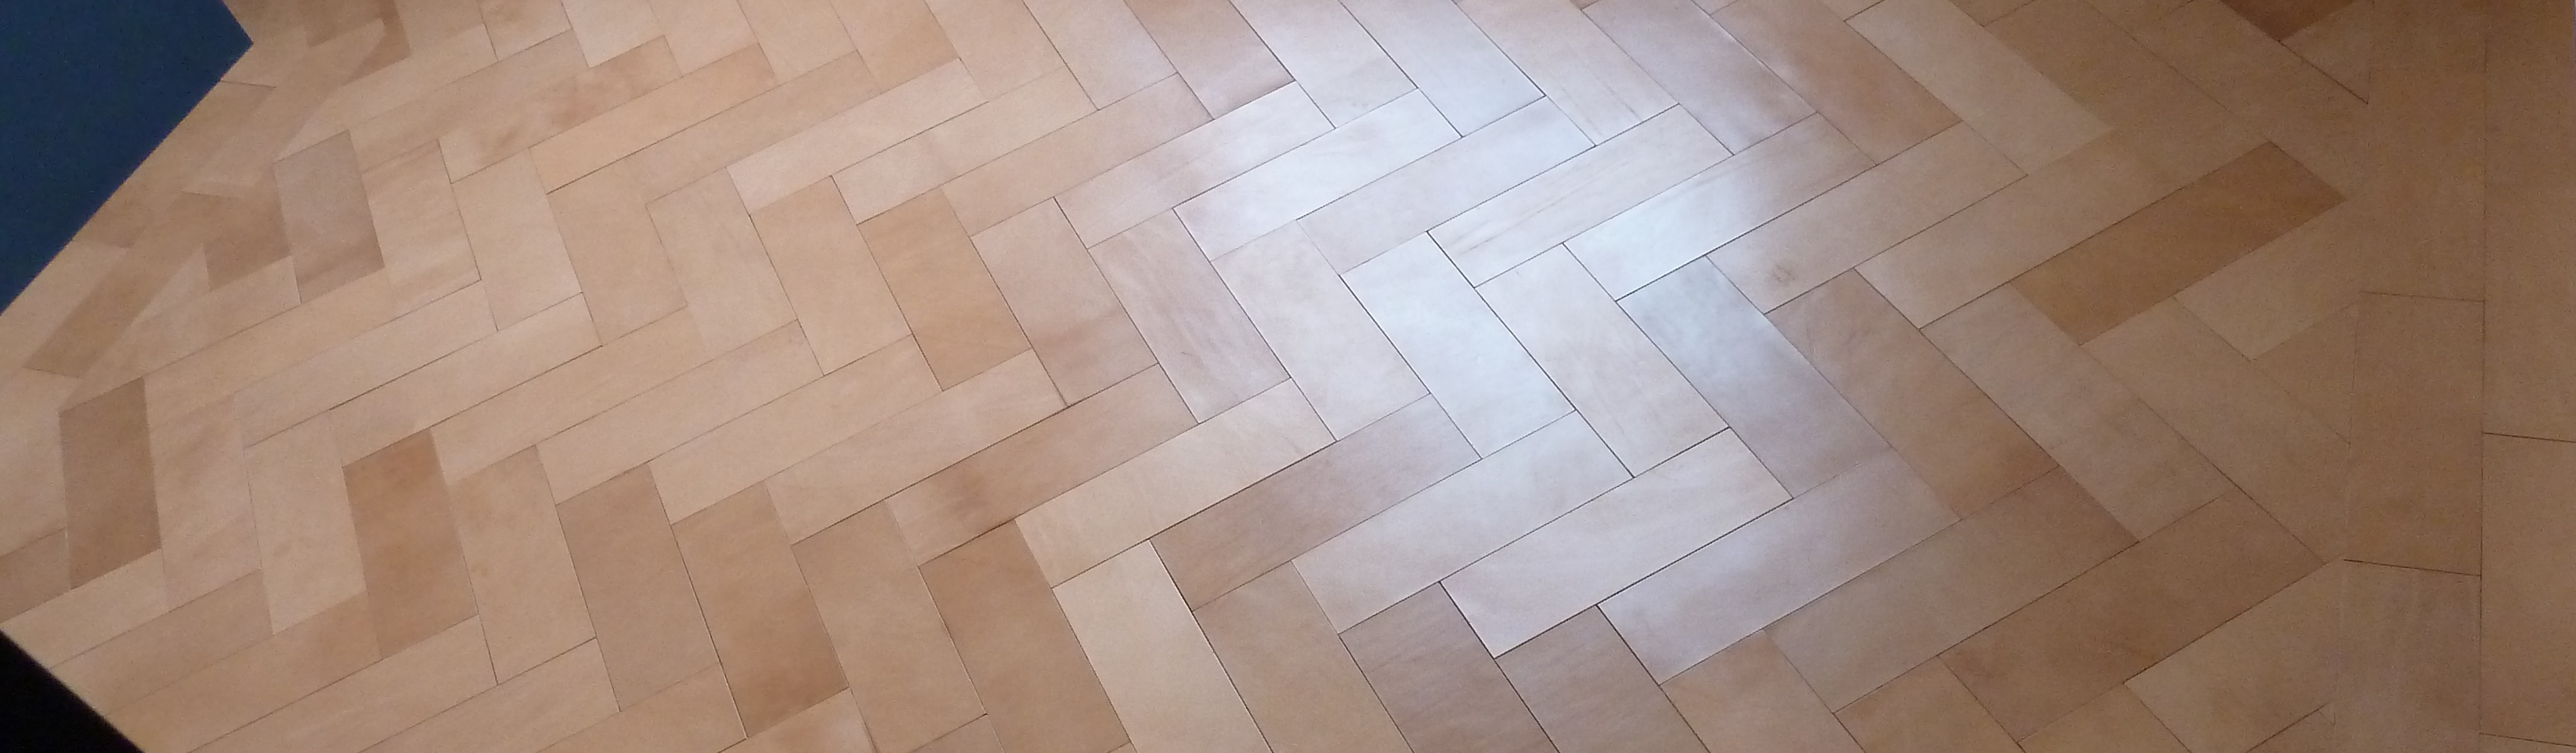 HERITAGE LEATHER PARQUET - A fusion of Design Classics